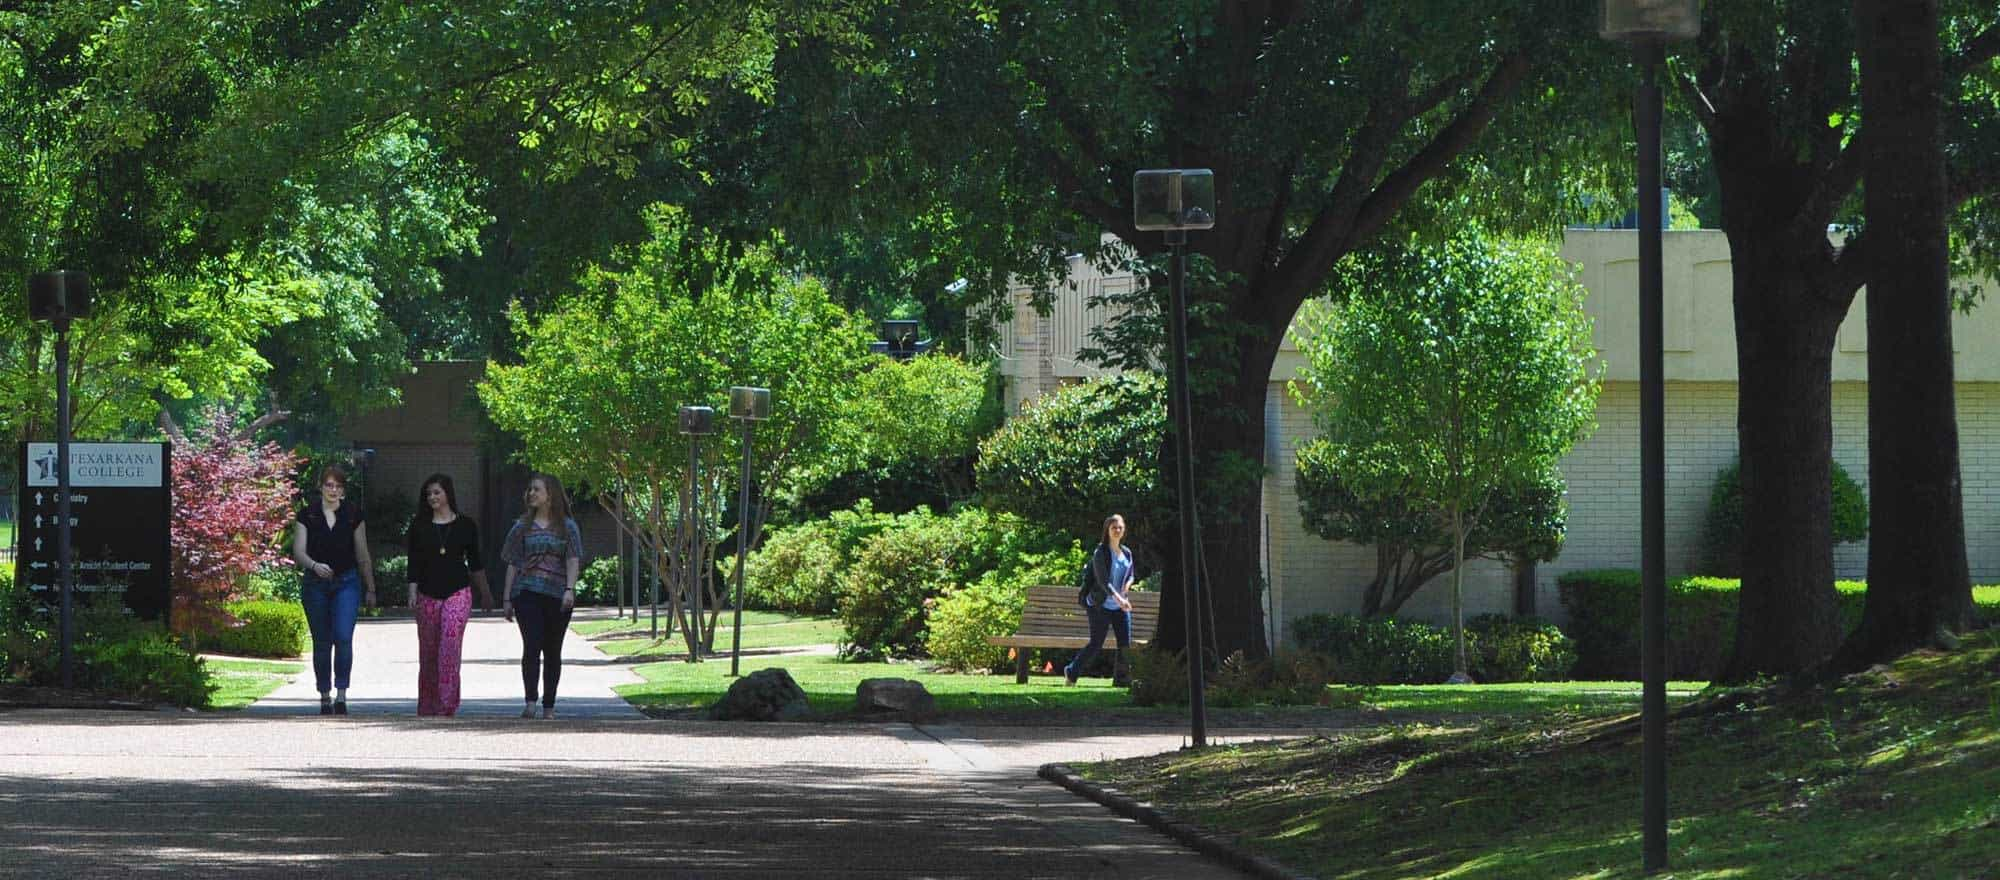 Board of Trustees Approve Strategic Goals Leading to Greater Student Access to Higher Education